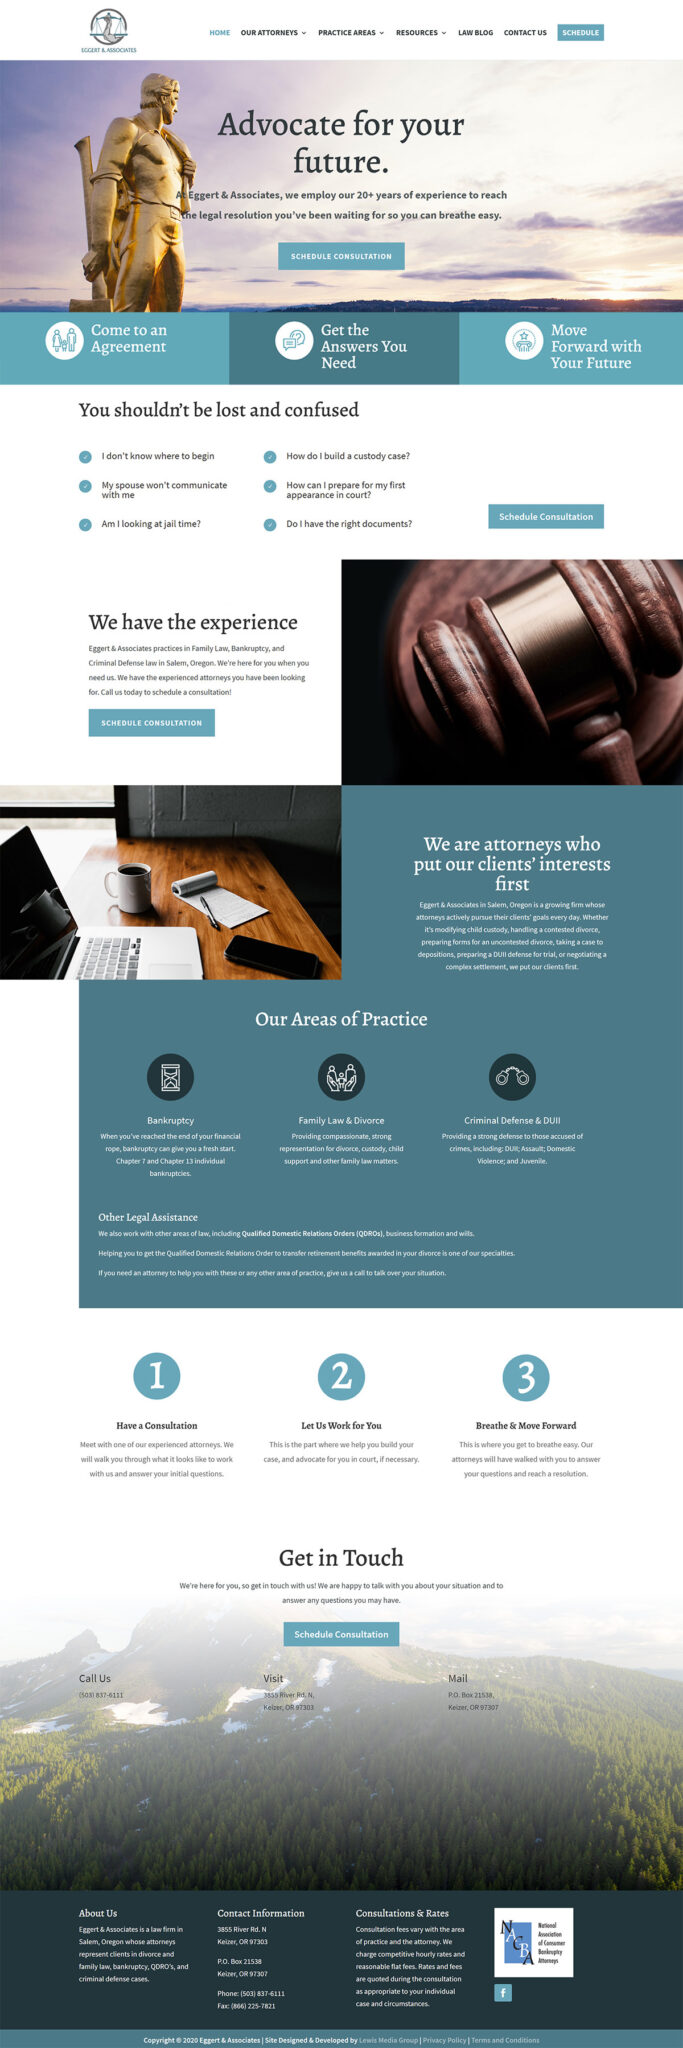 Eggert & Associates Home page after redesign